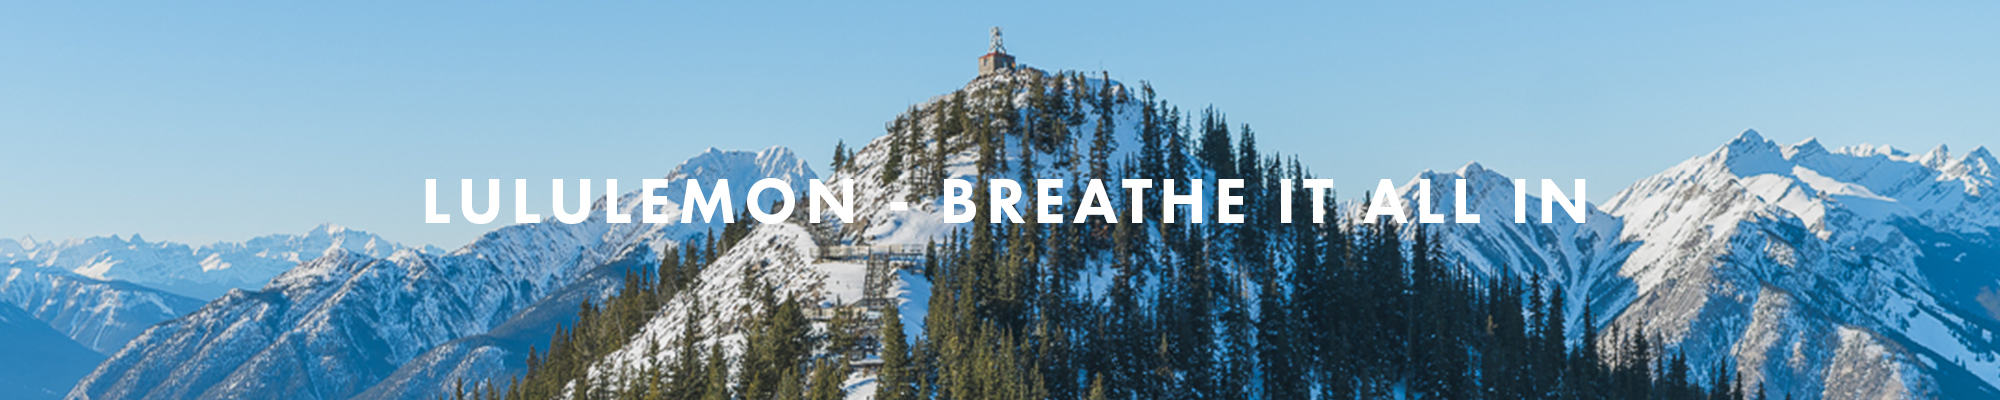 Lululemon Website Banner.jpg